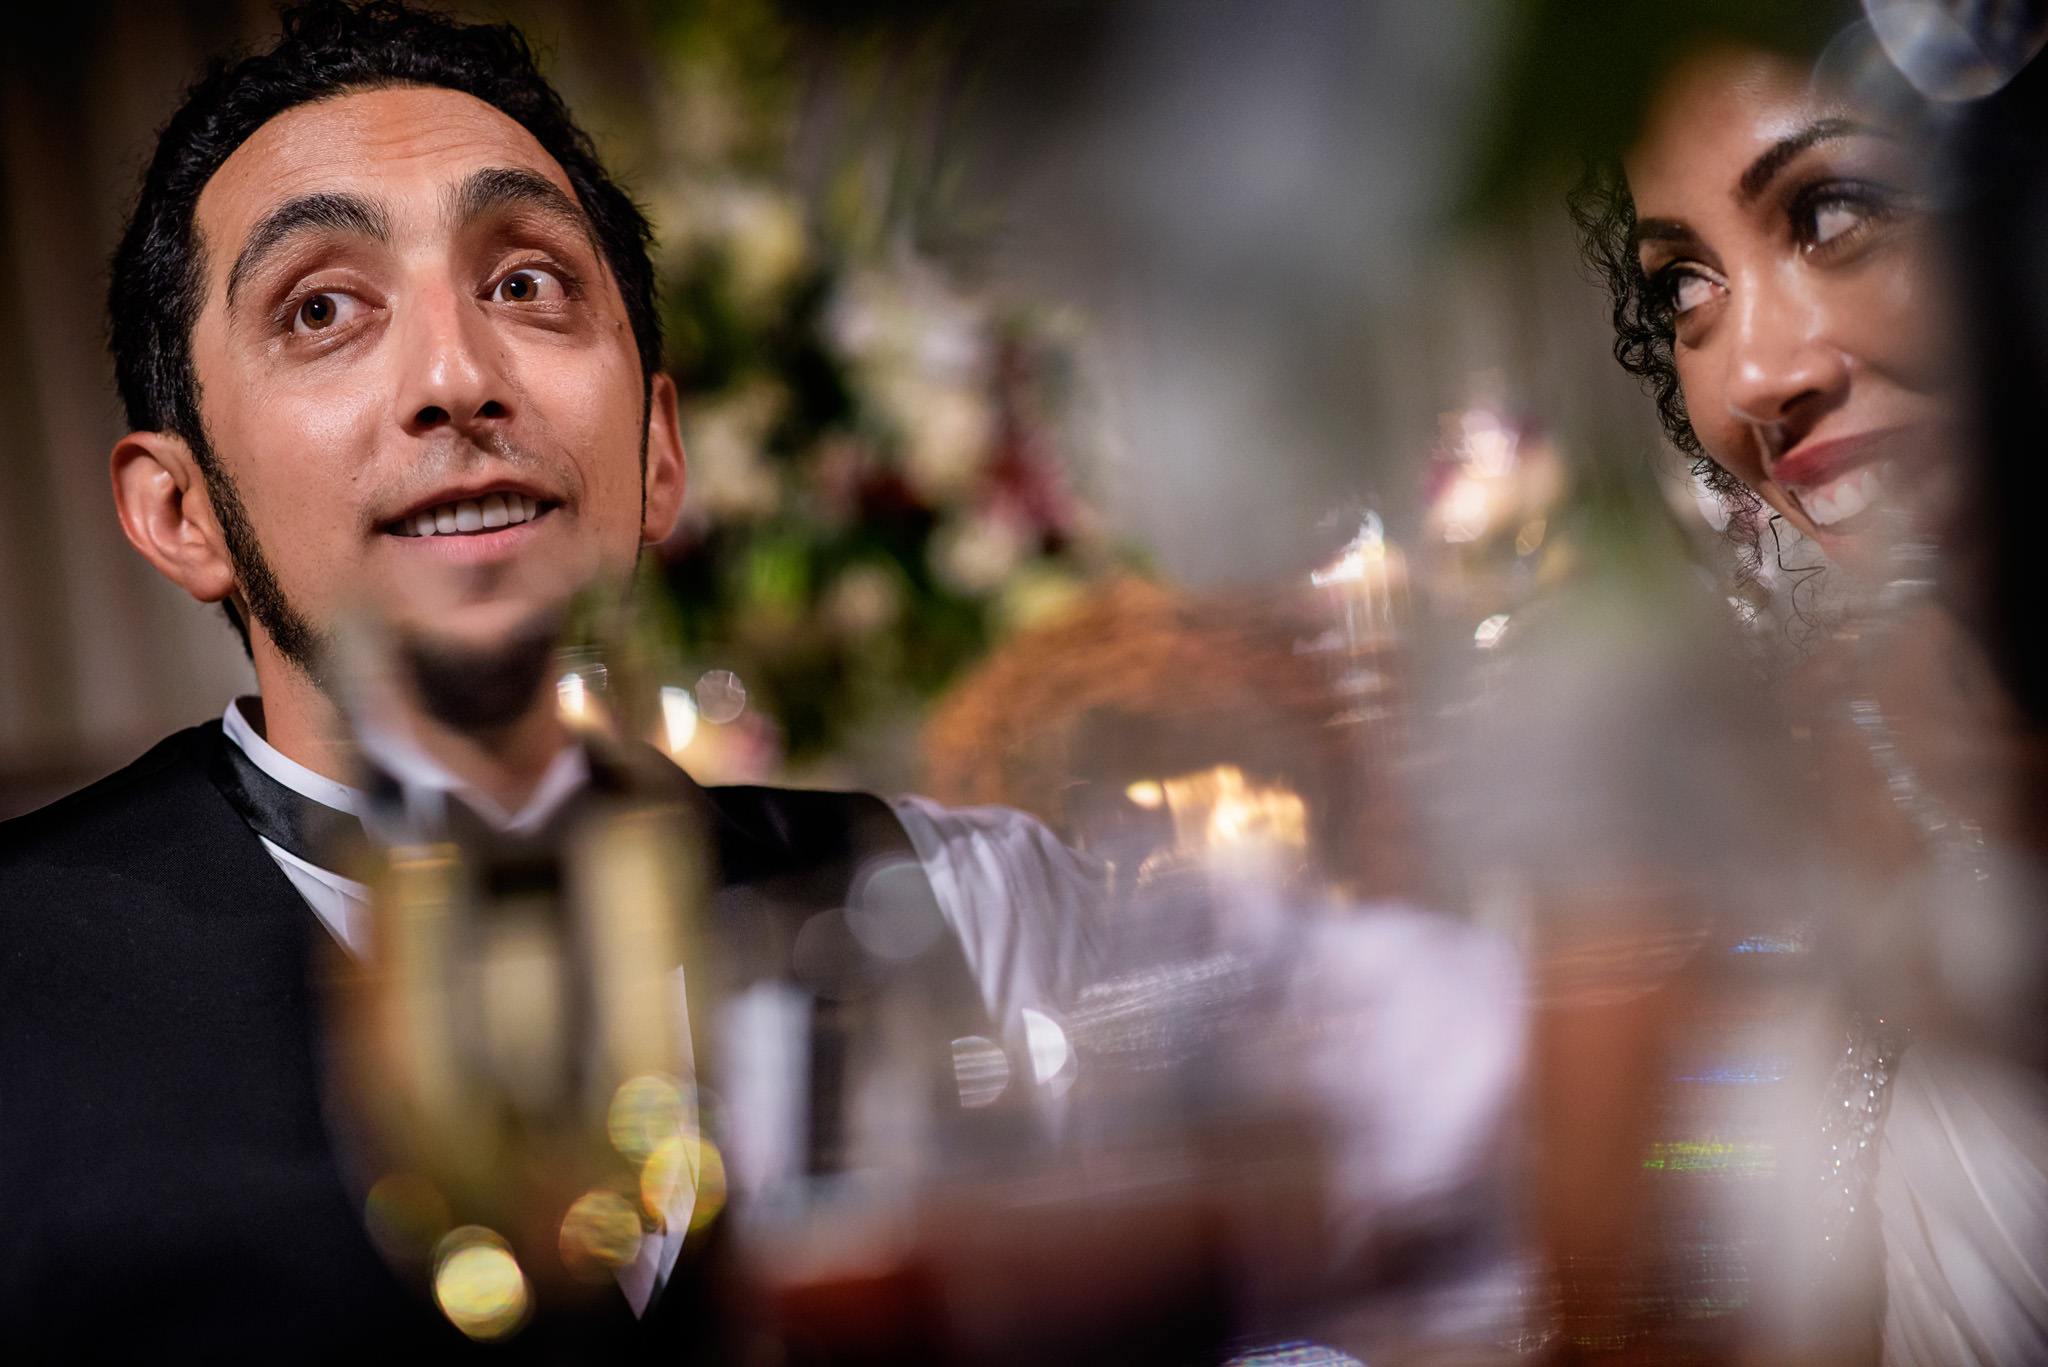 Portrait of bride and bridegroom during their wedding reception